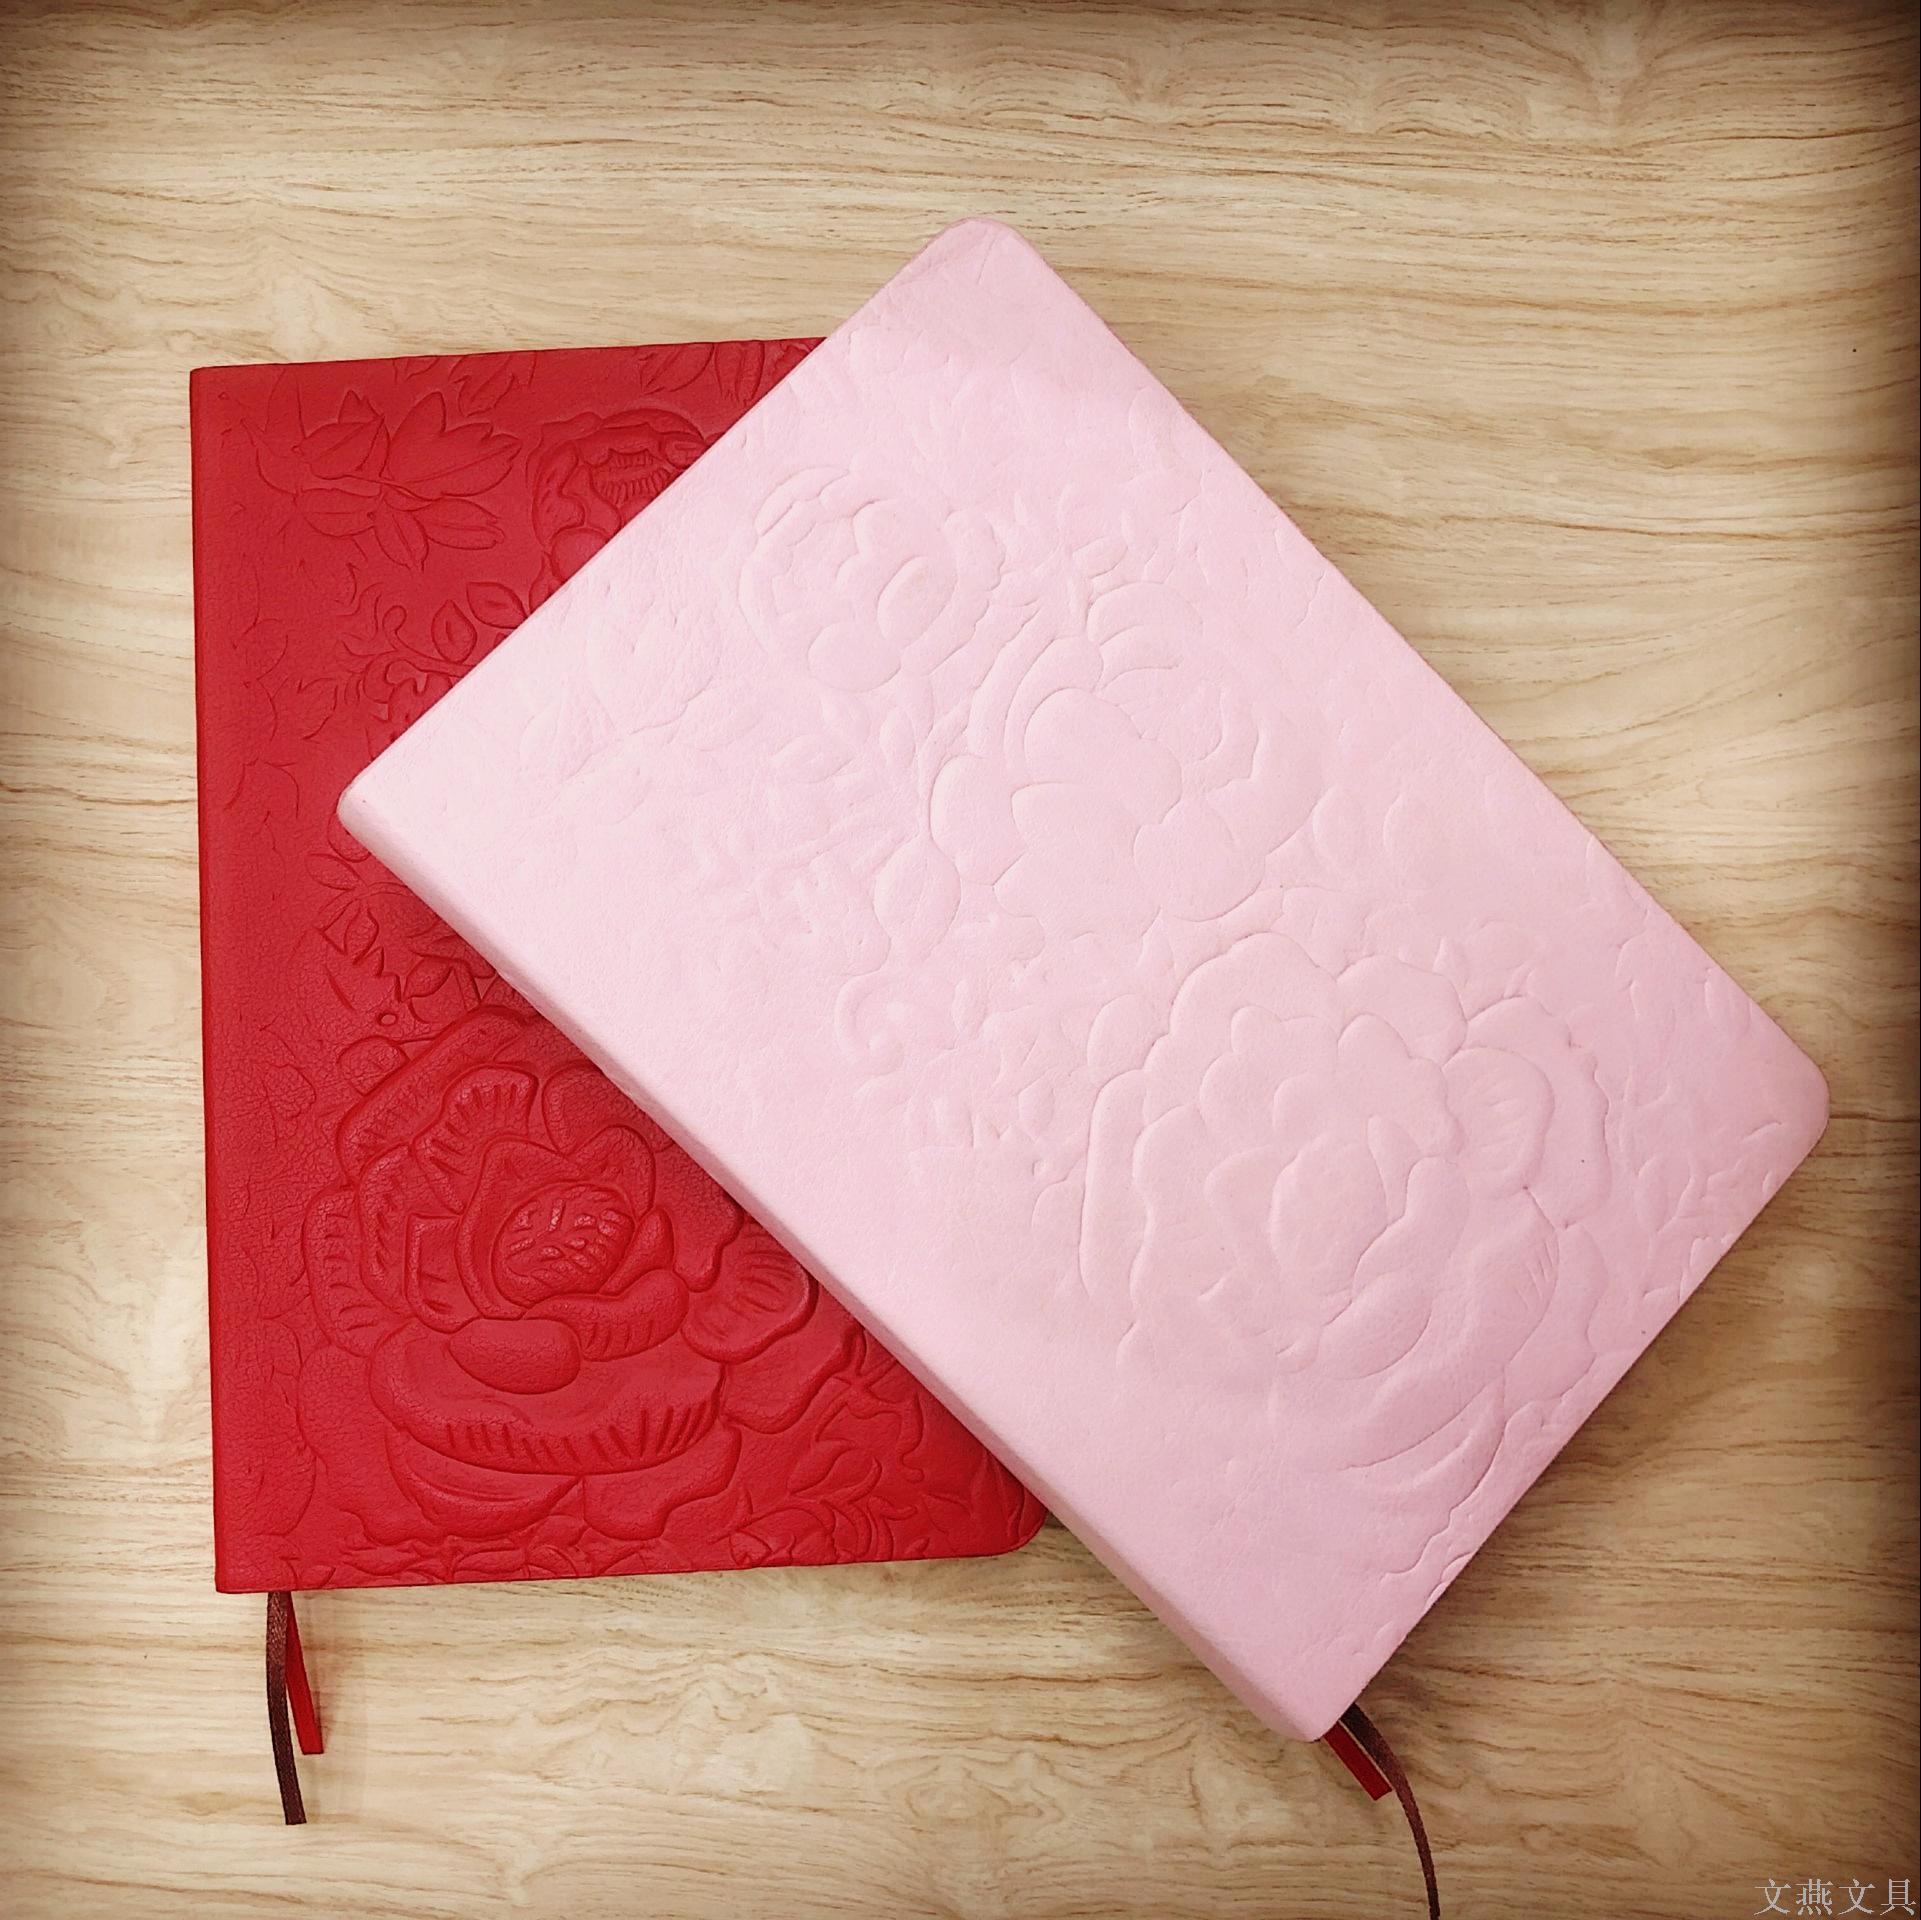 Supply Wen Yan Stationery Creative Embossed Notebook Red Flower